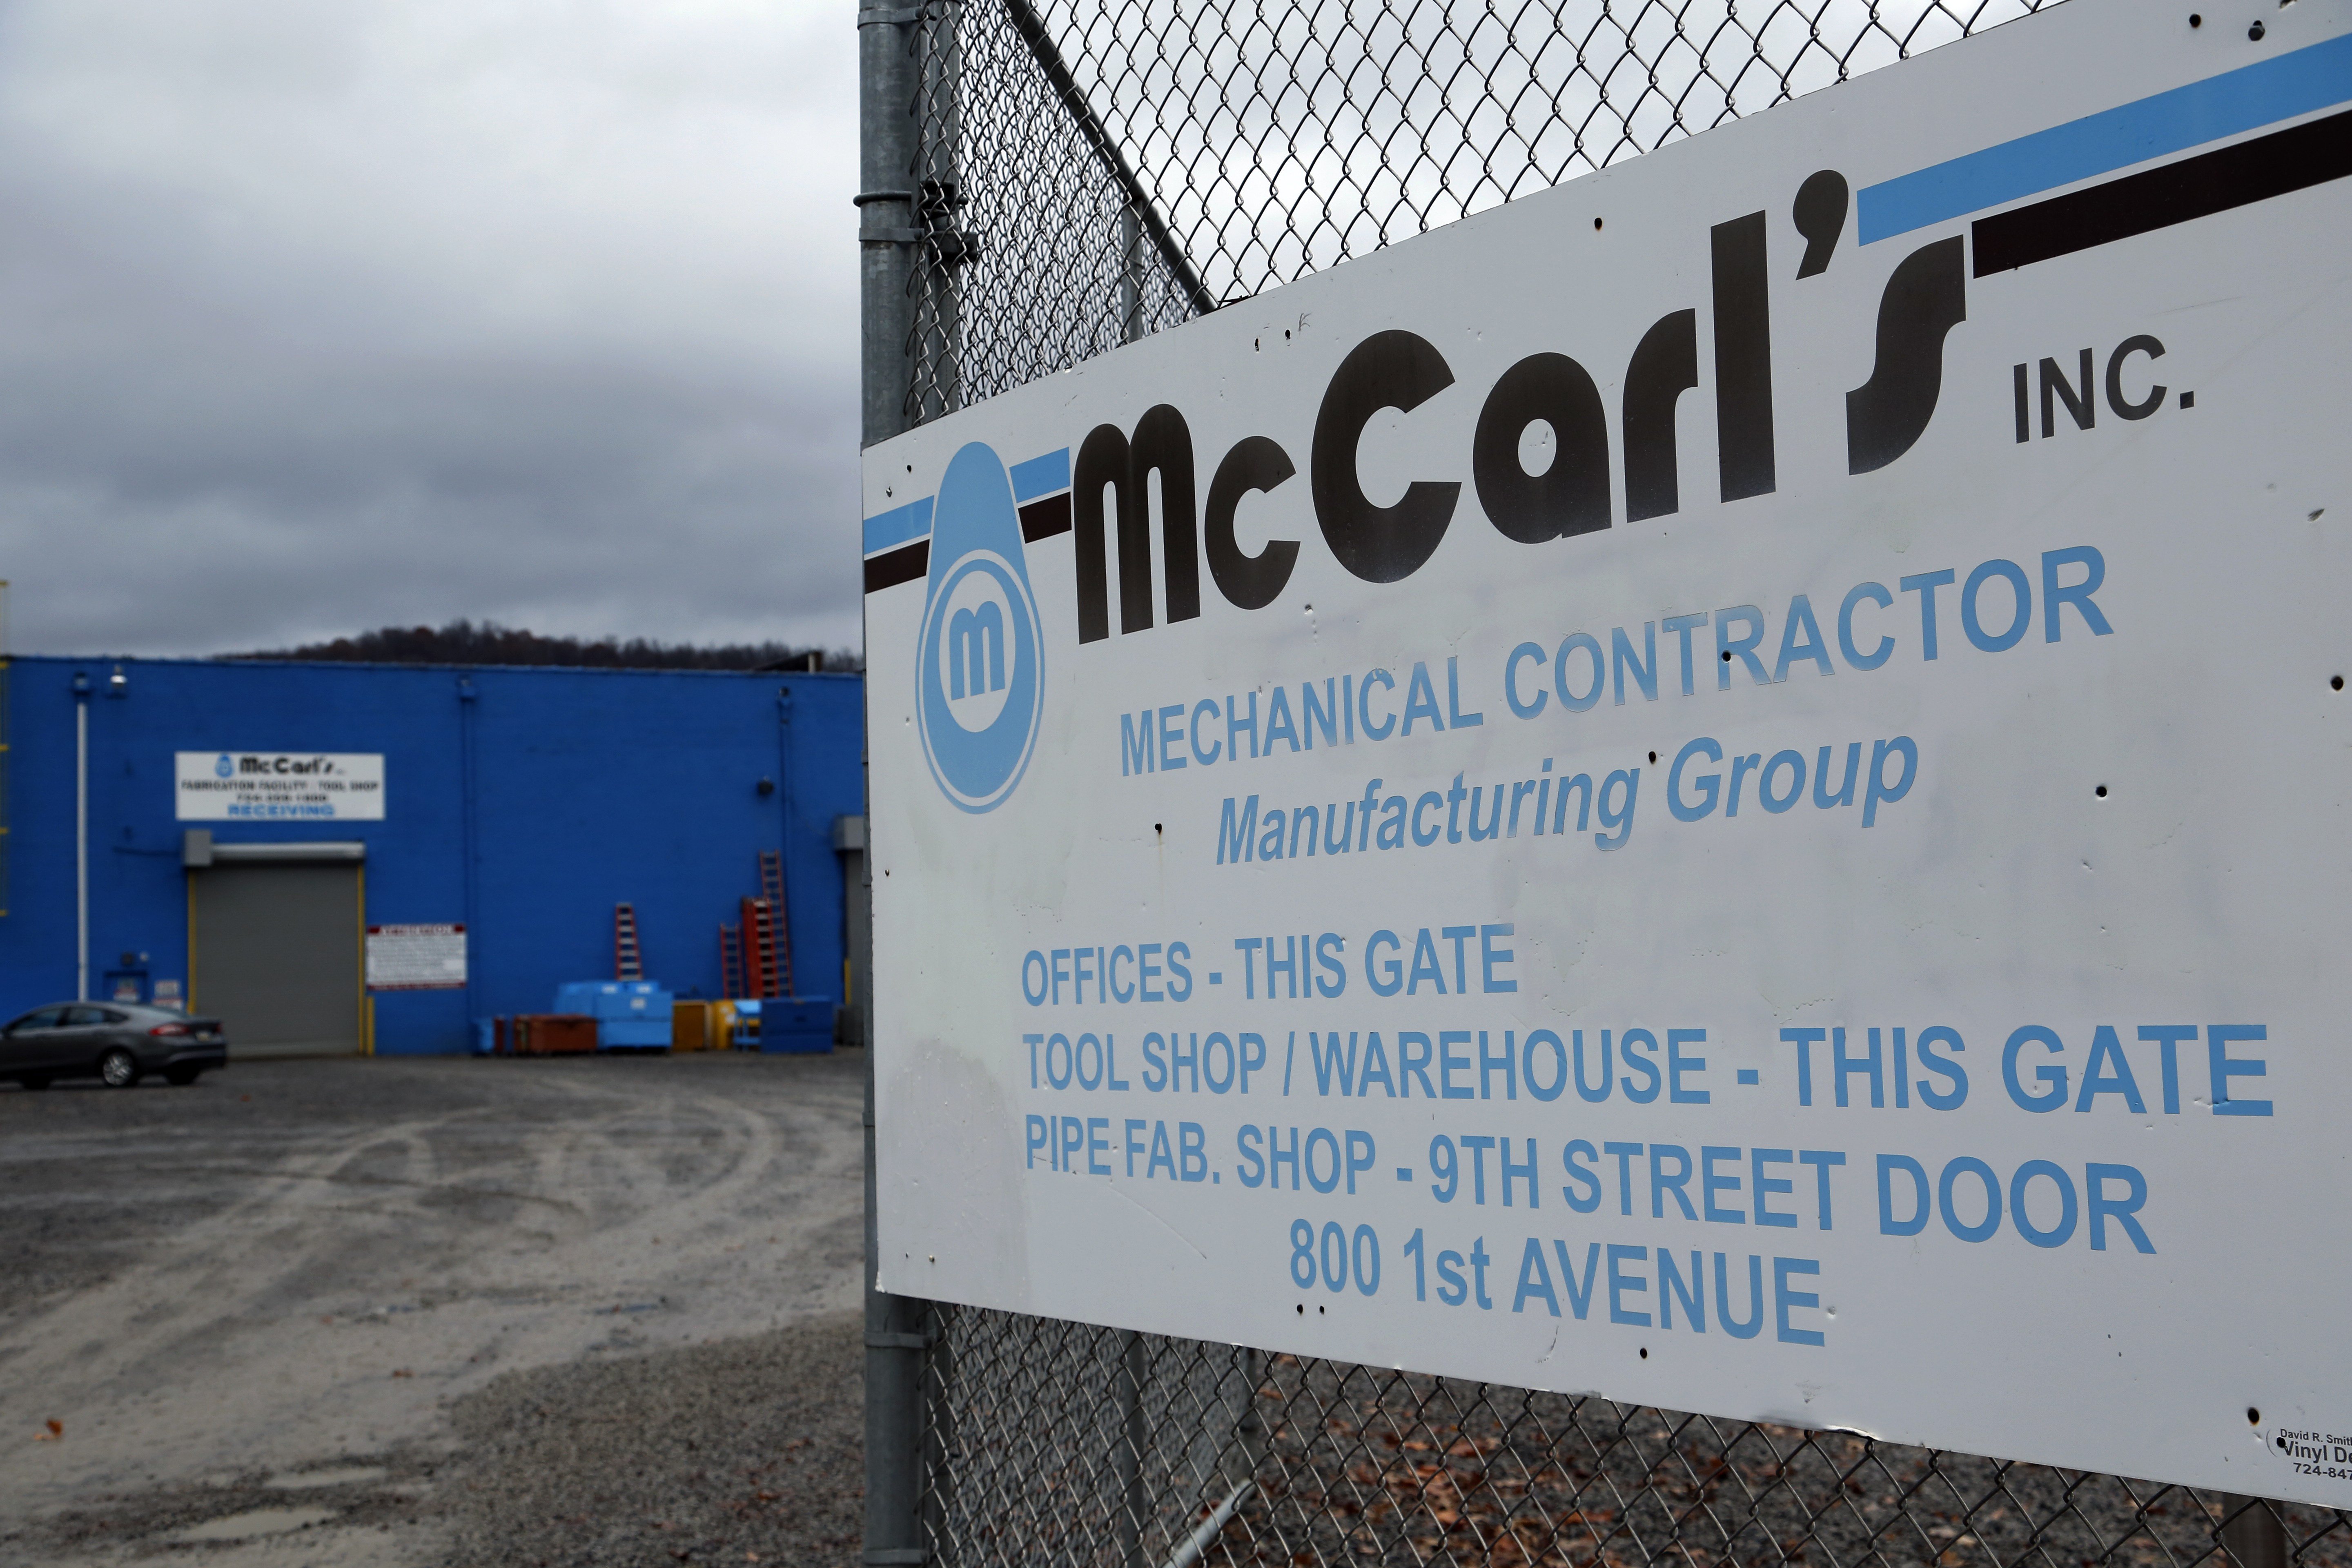 Bluebeam BIM McCarls Inc